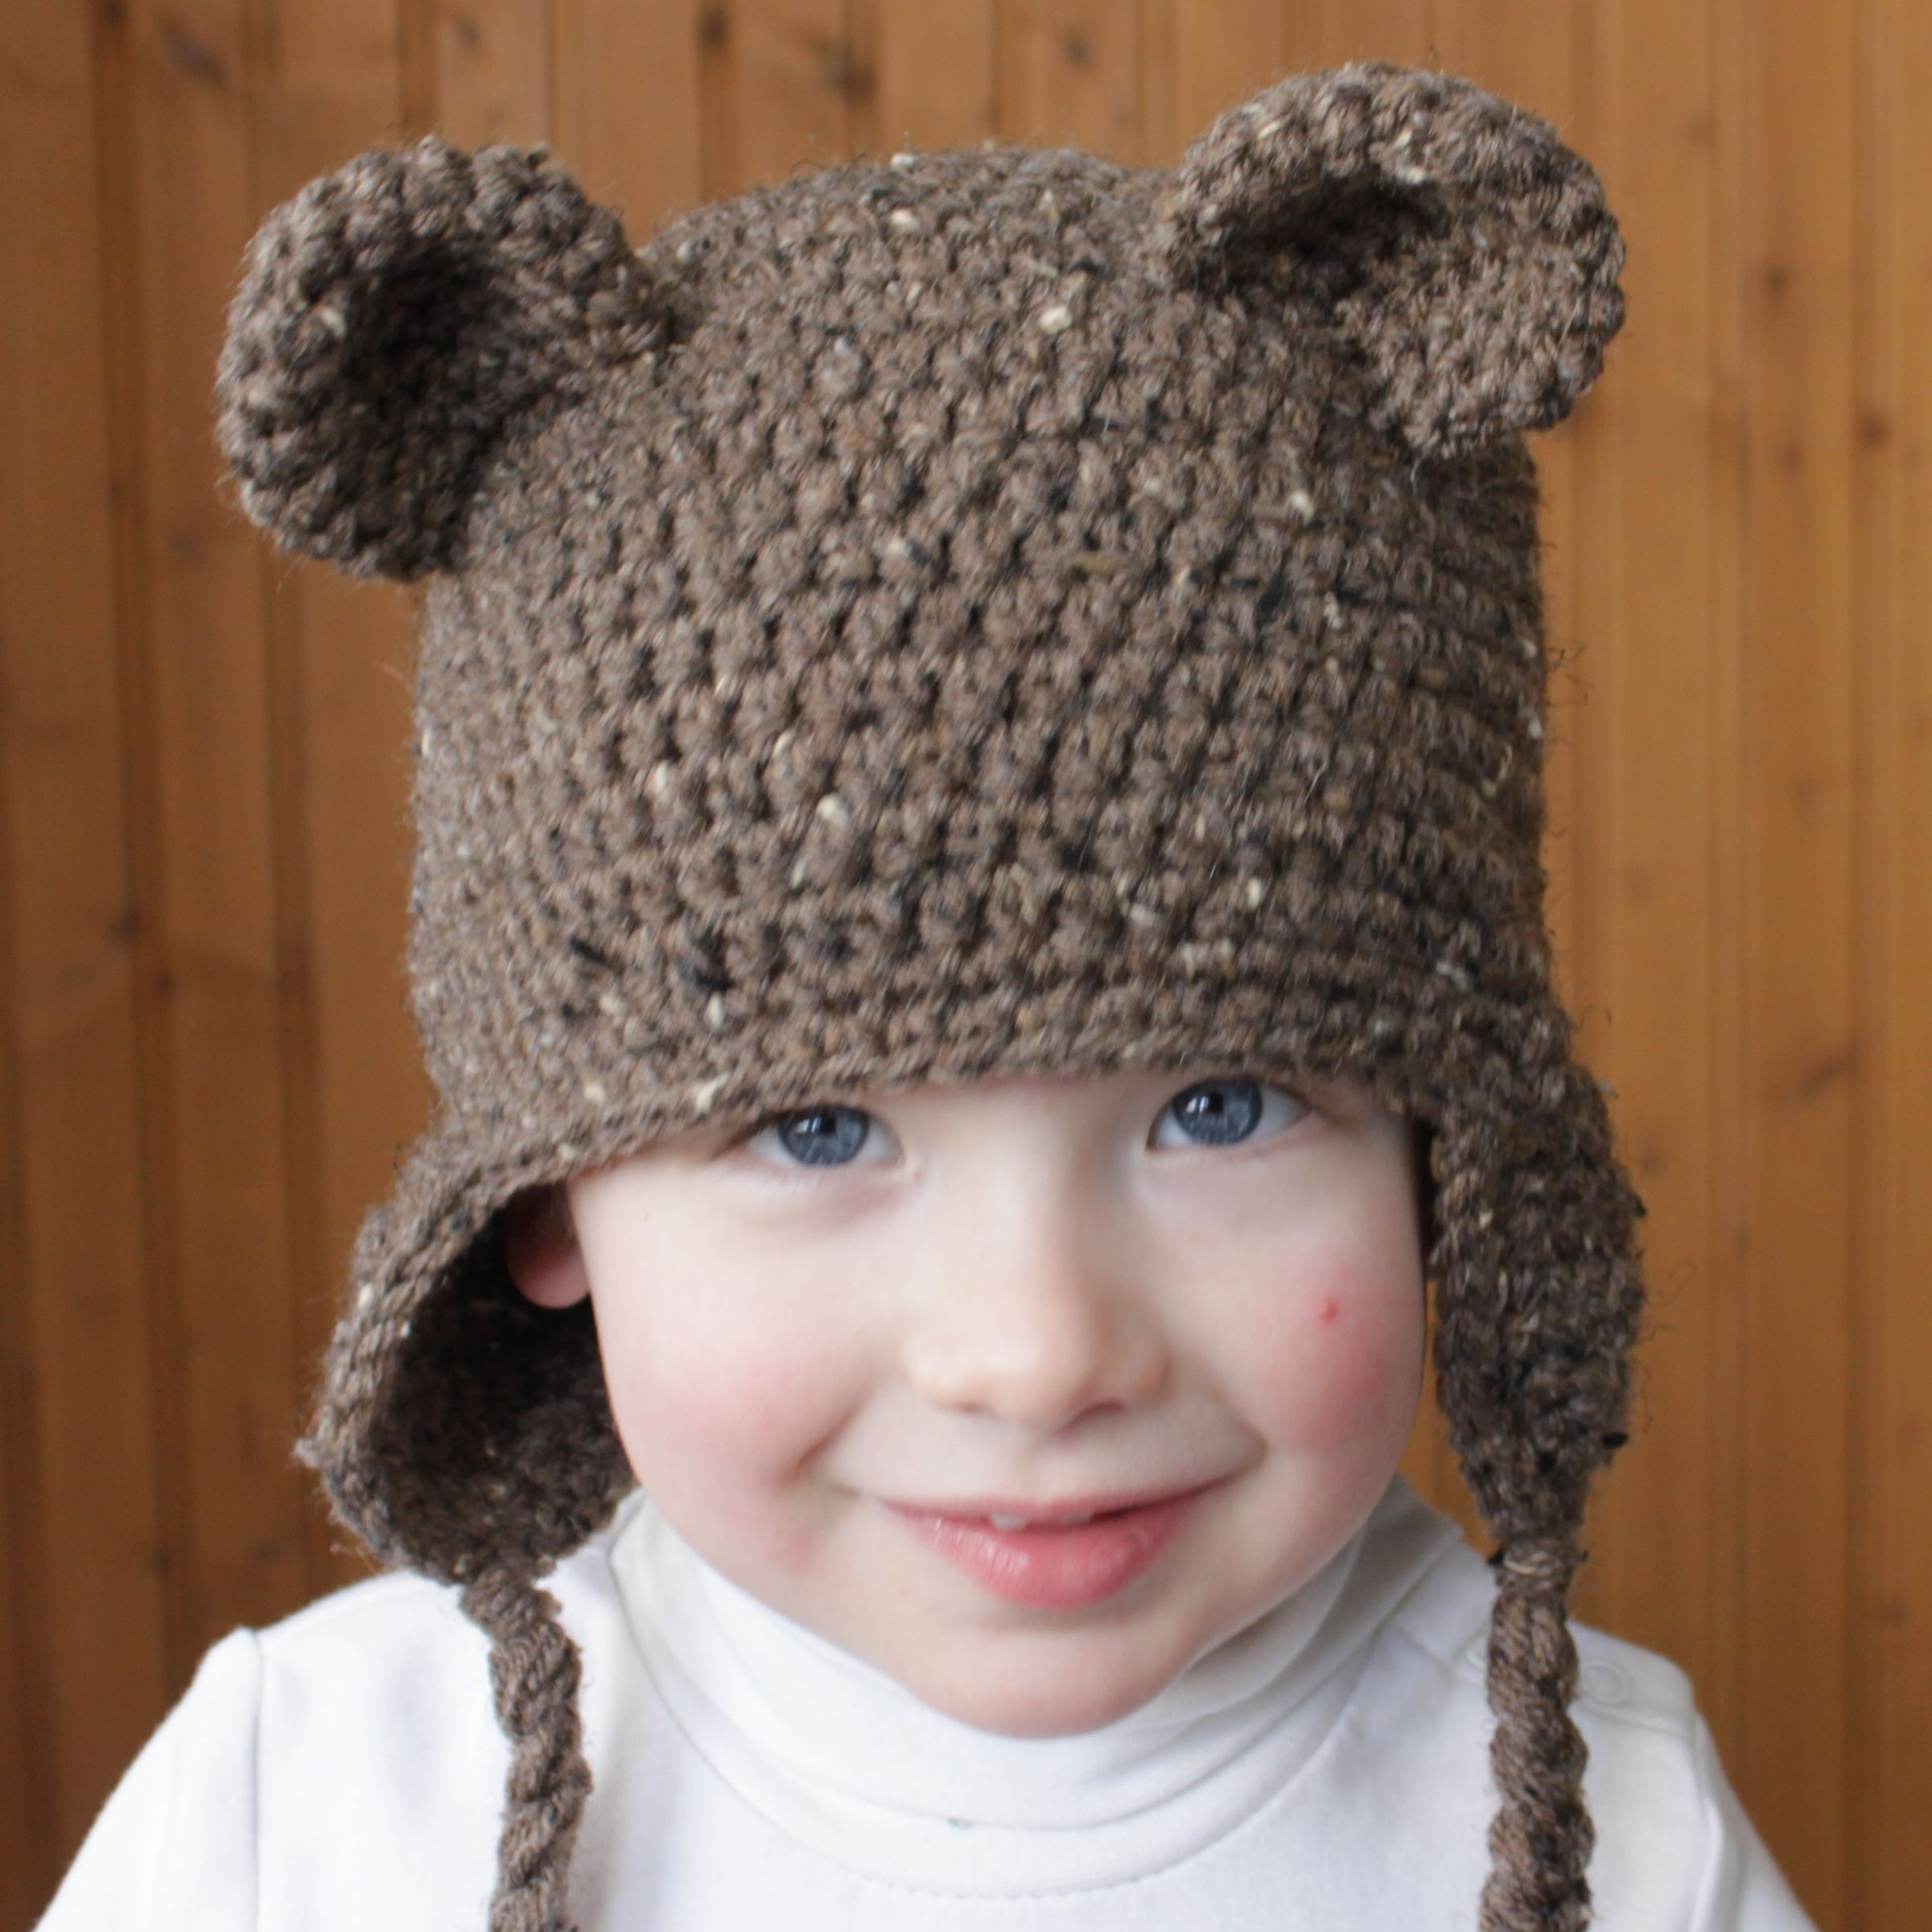 Free Knitting Pattern Hat With Ears : bear hat/ear pattern.... So I think I will just have a hat ...